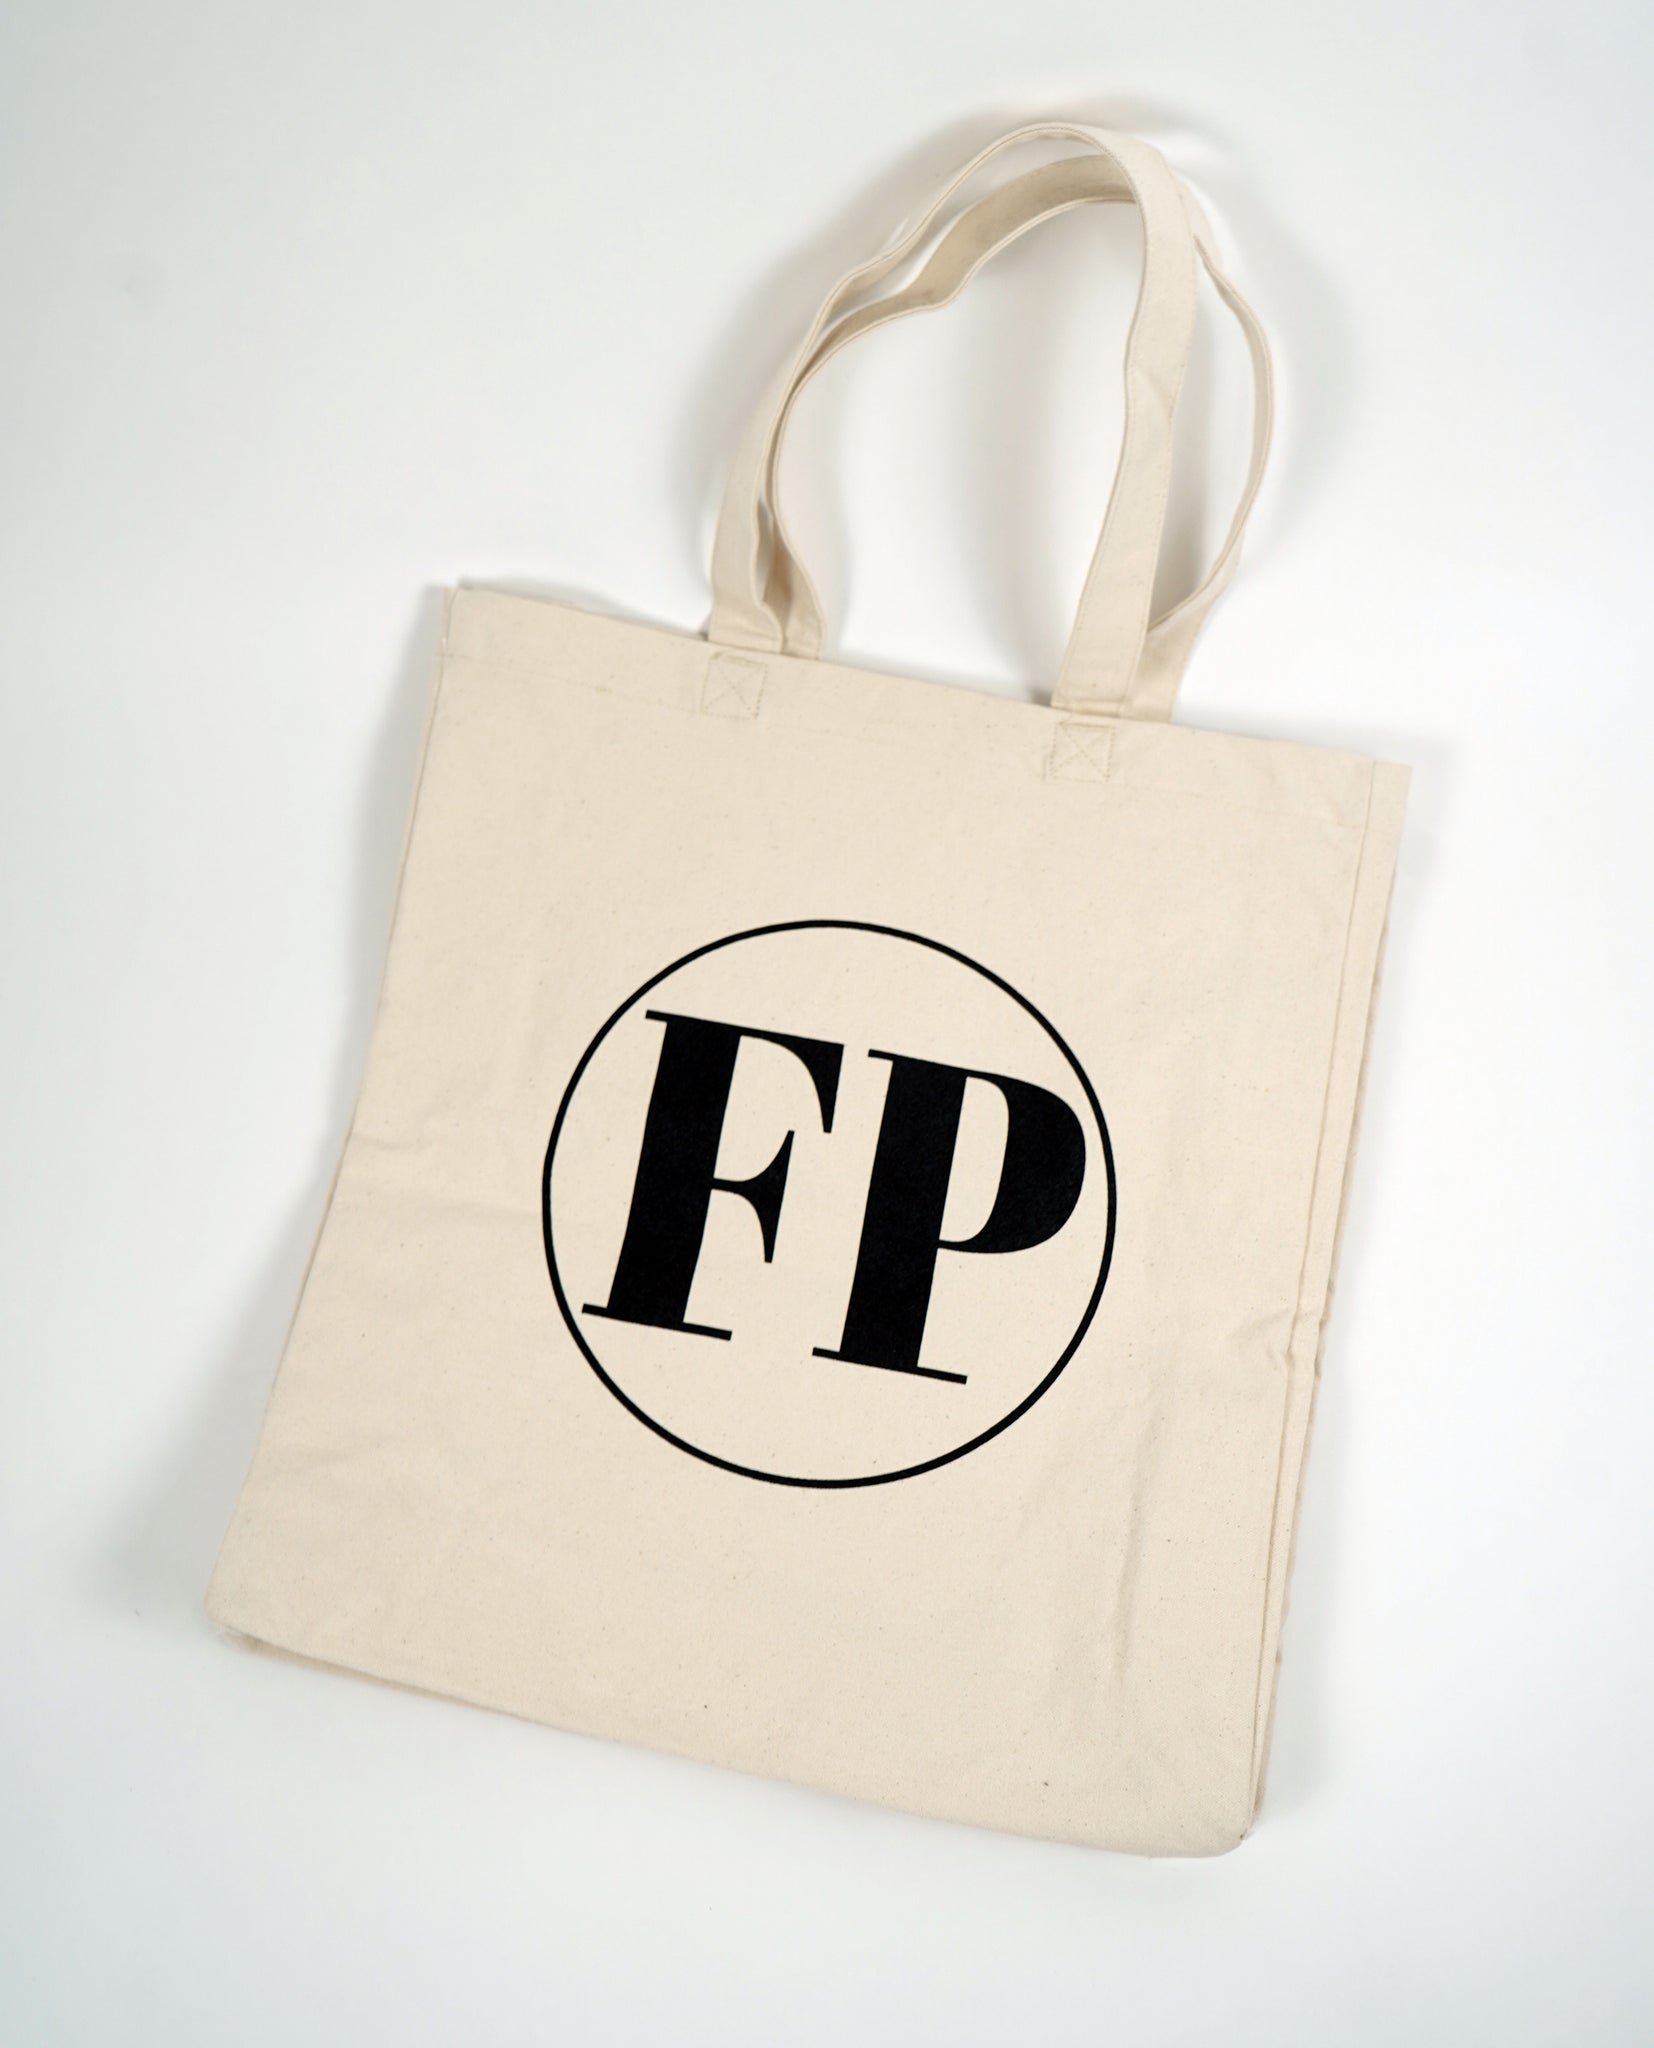 Elevated Tote Bag - Natural